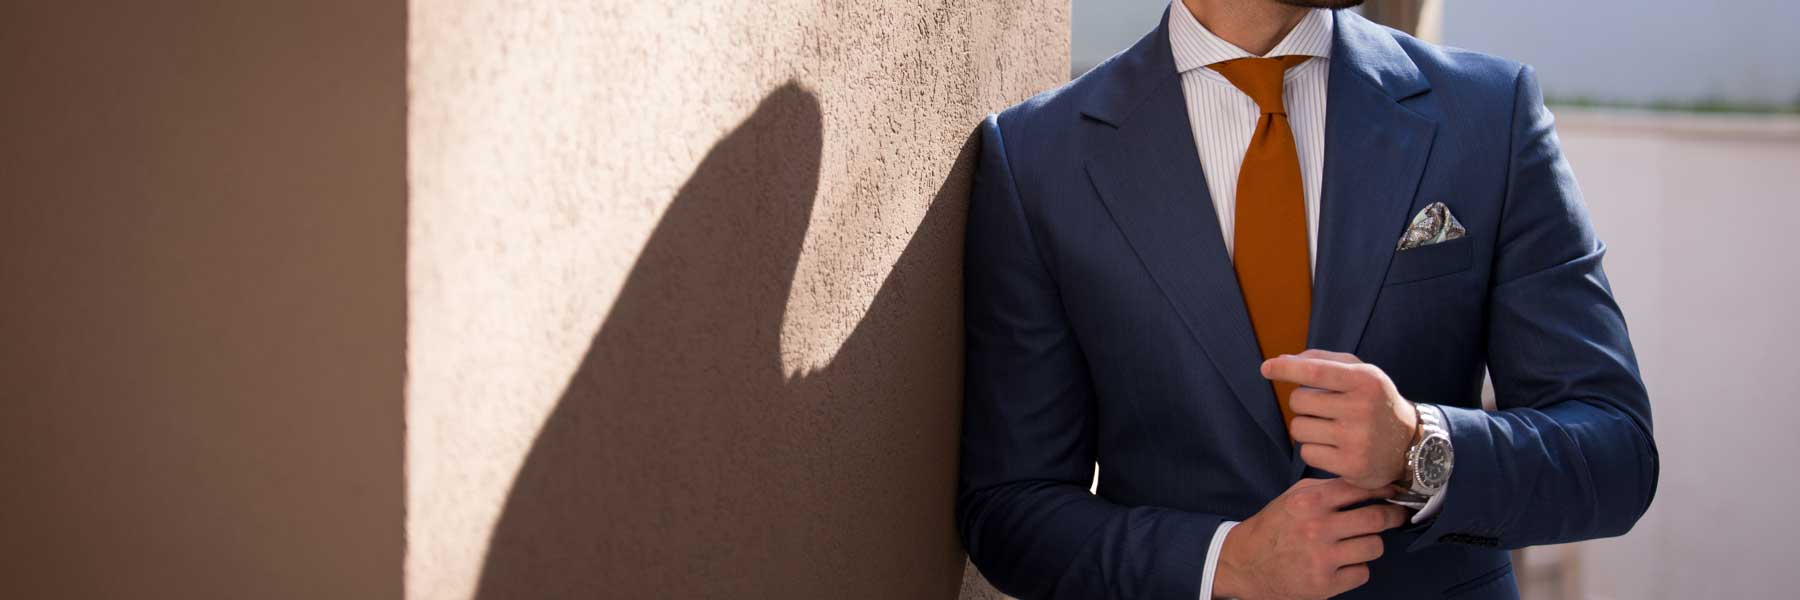 Custom suits online in Montreal | Suitablee